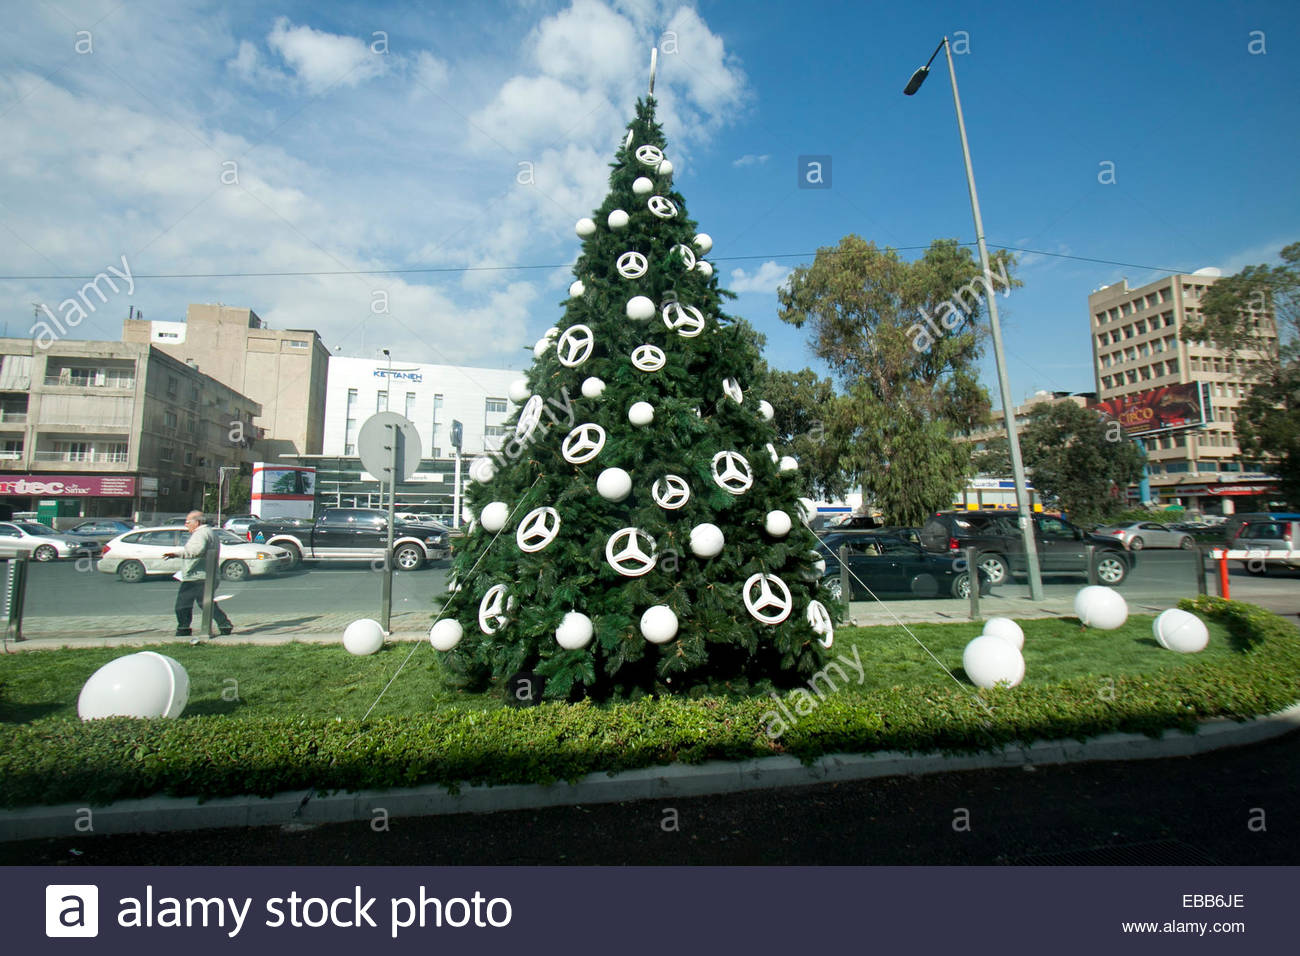 beirut lebanon 28th november 2014 a christmas tree decorated with mercedes benz signs outside